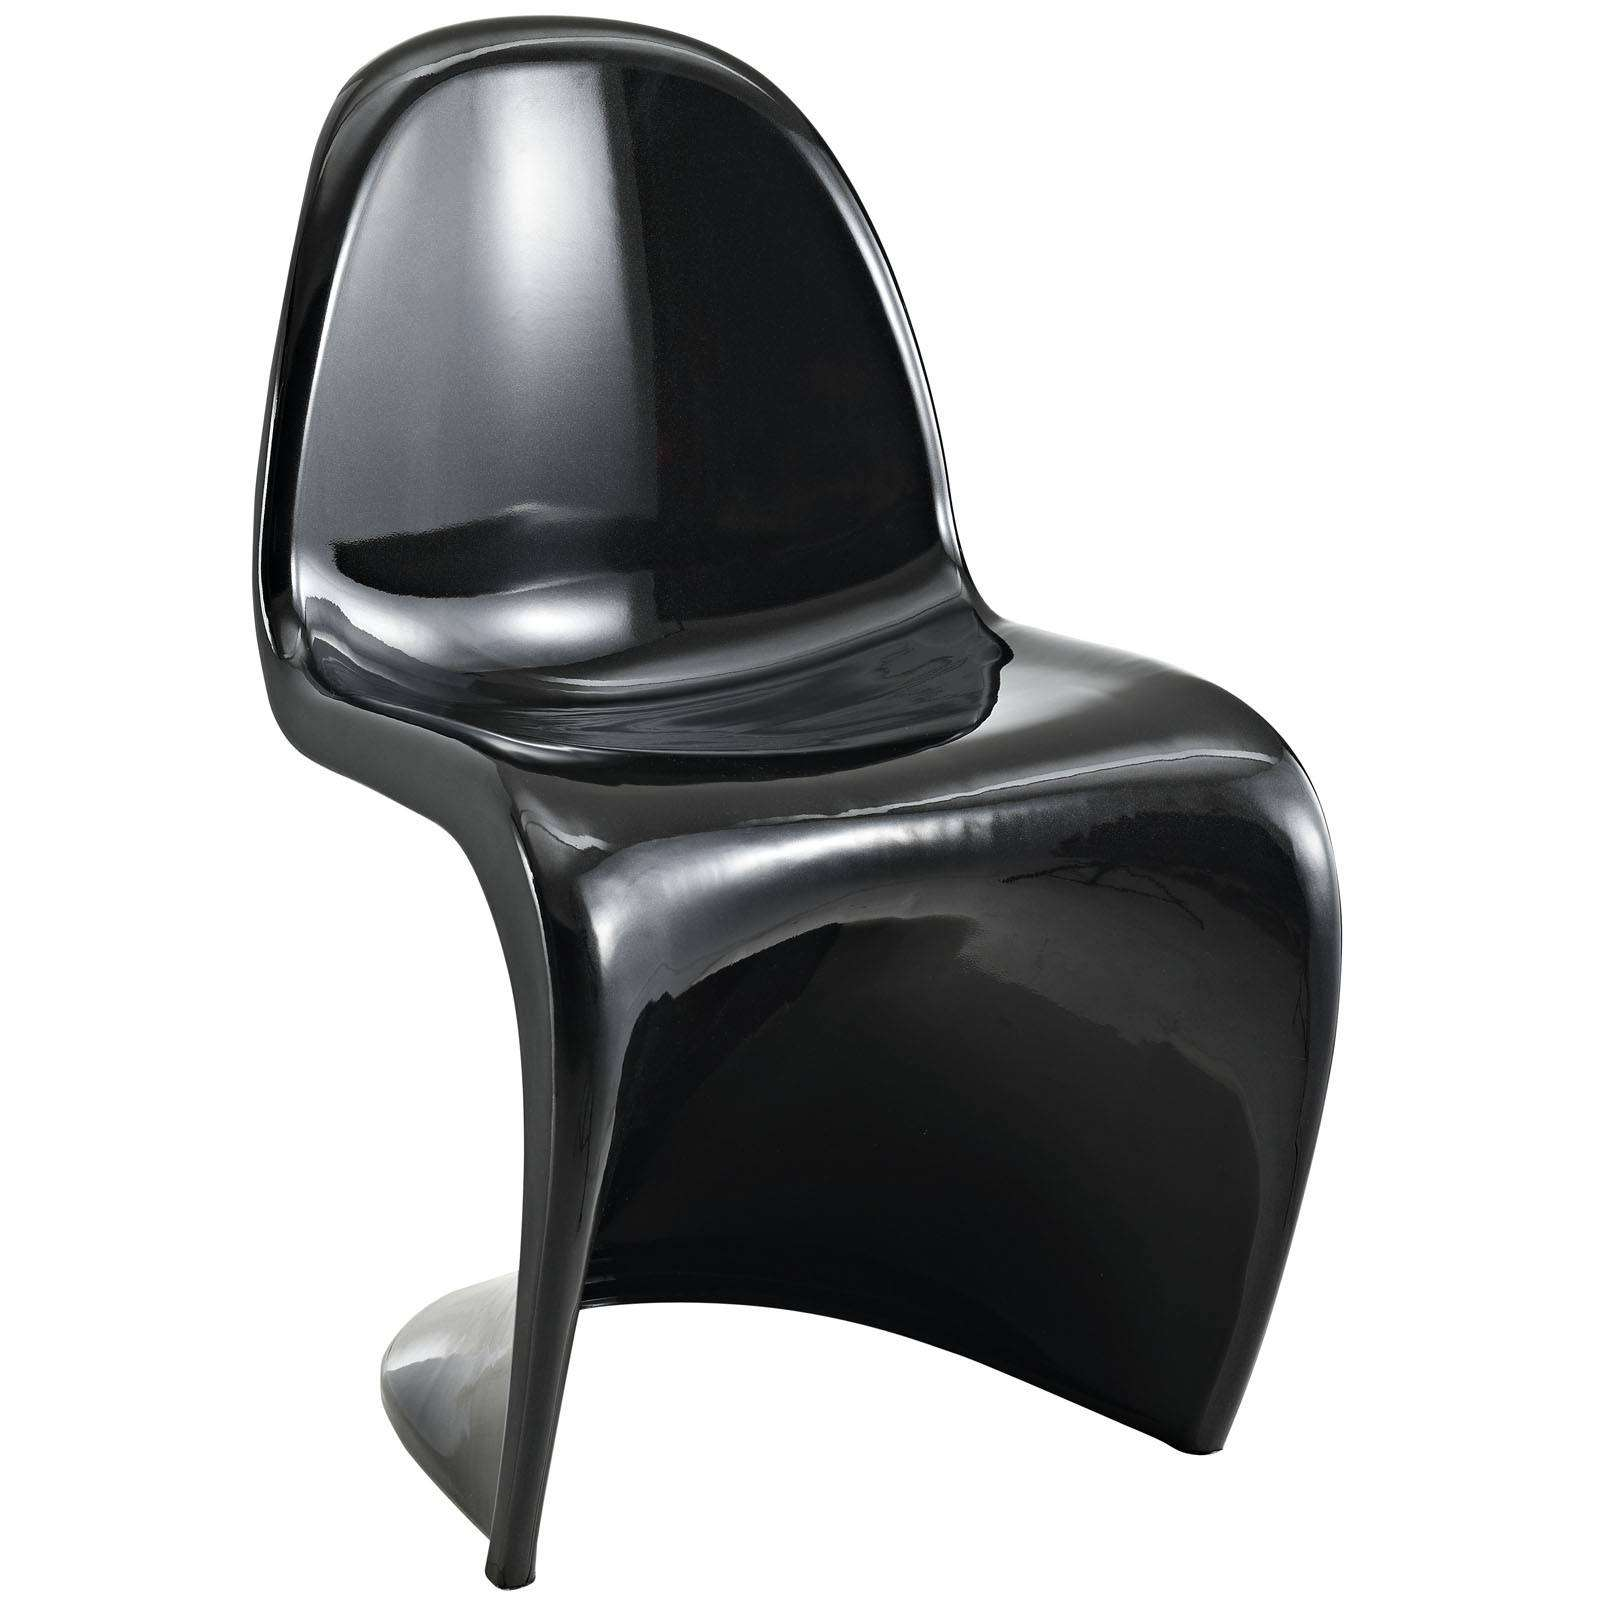 S Shaped Chair